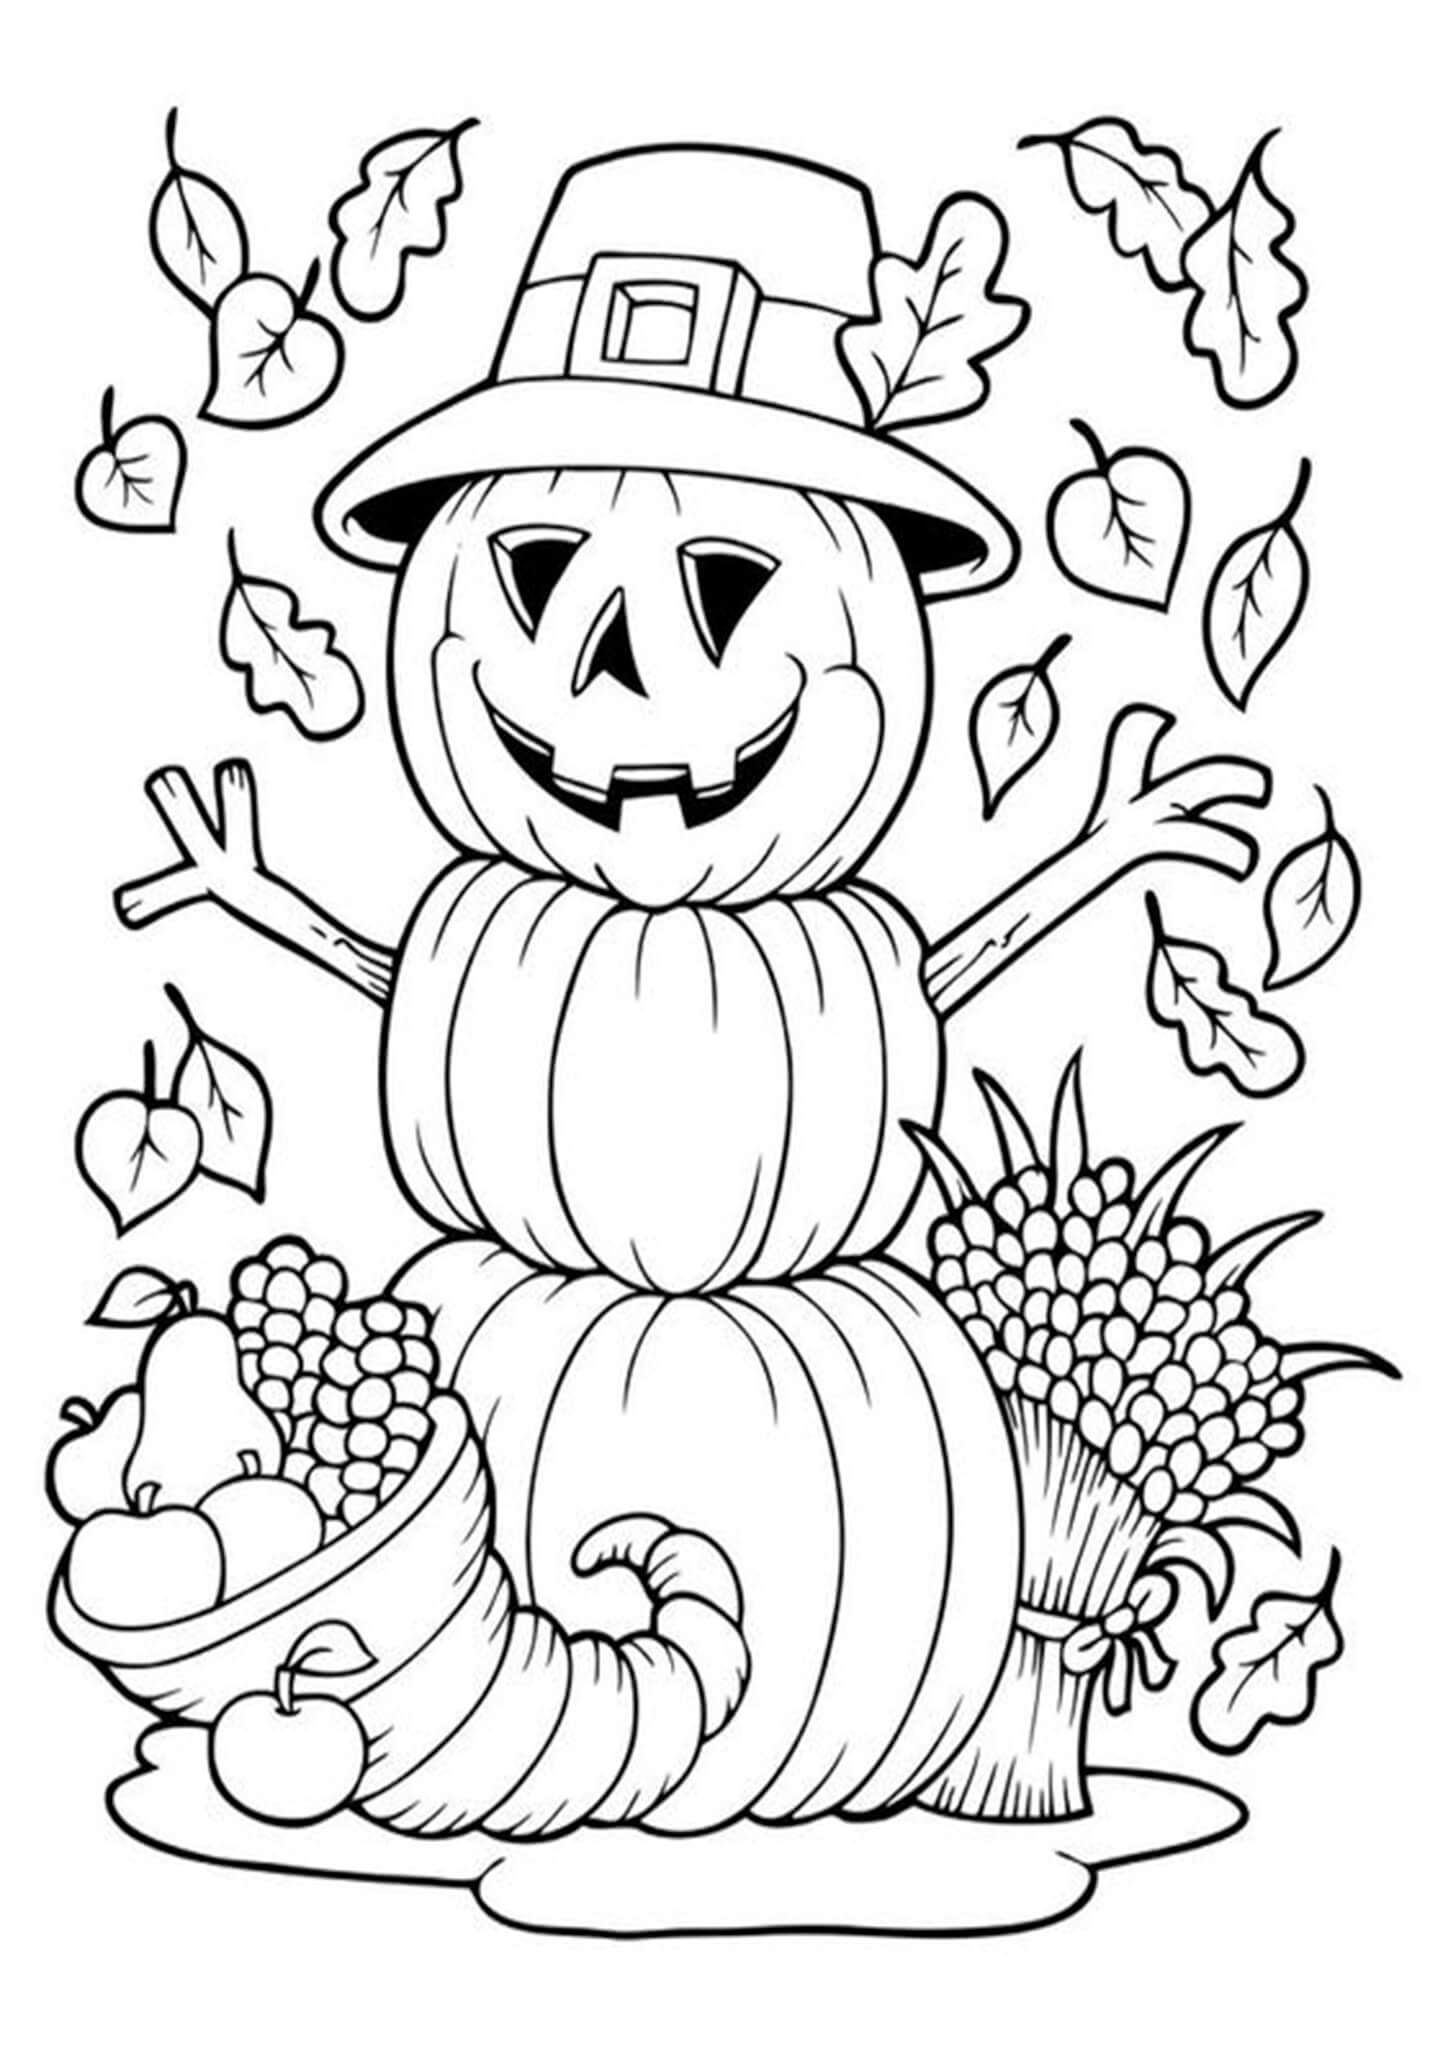 Free Easy To Print Halloween Coloring Pages Halloween Coloring Book Free Thanksgiving Coloring Pages Thanksgiving Coloring Pages [ 2048 x 1448 Pixel ]